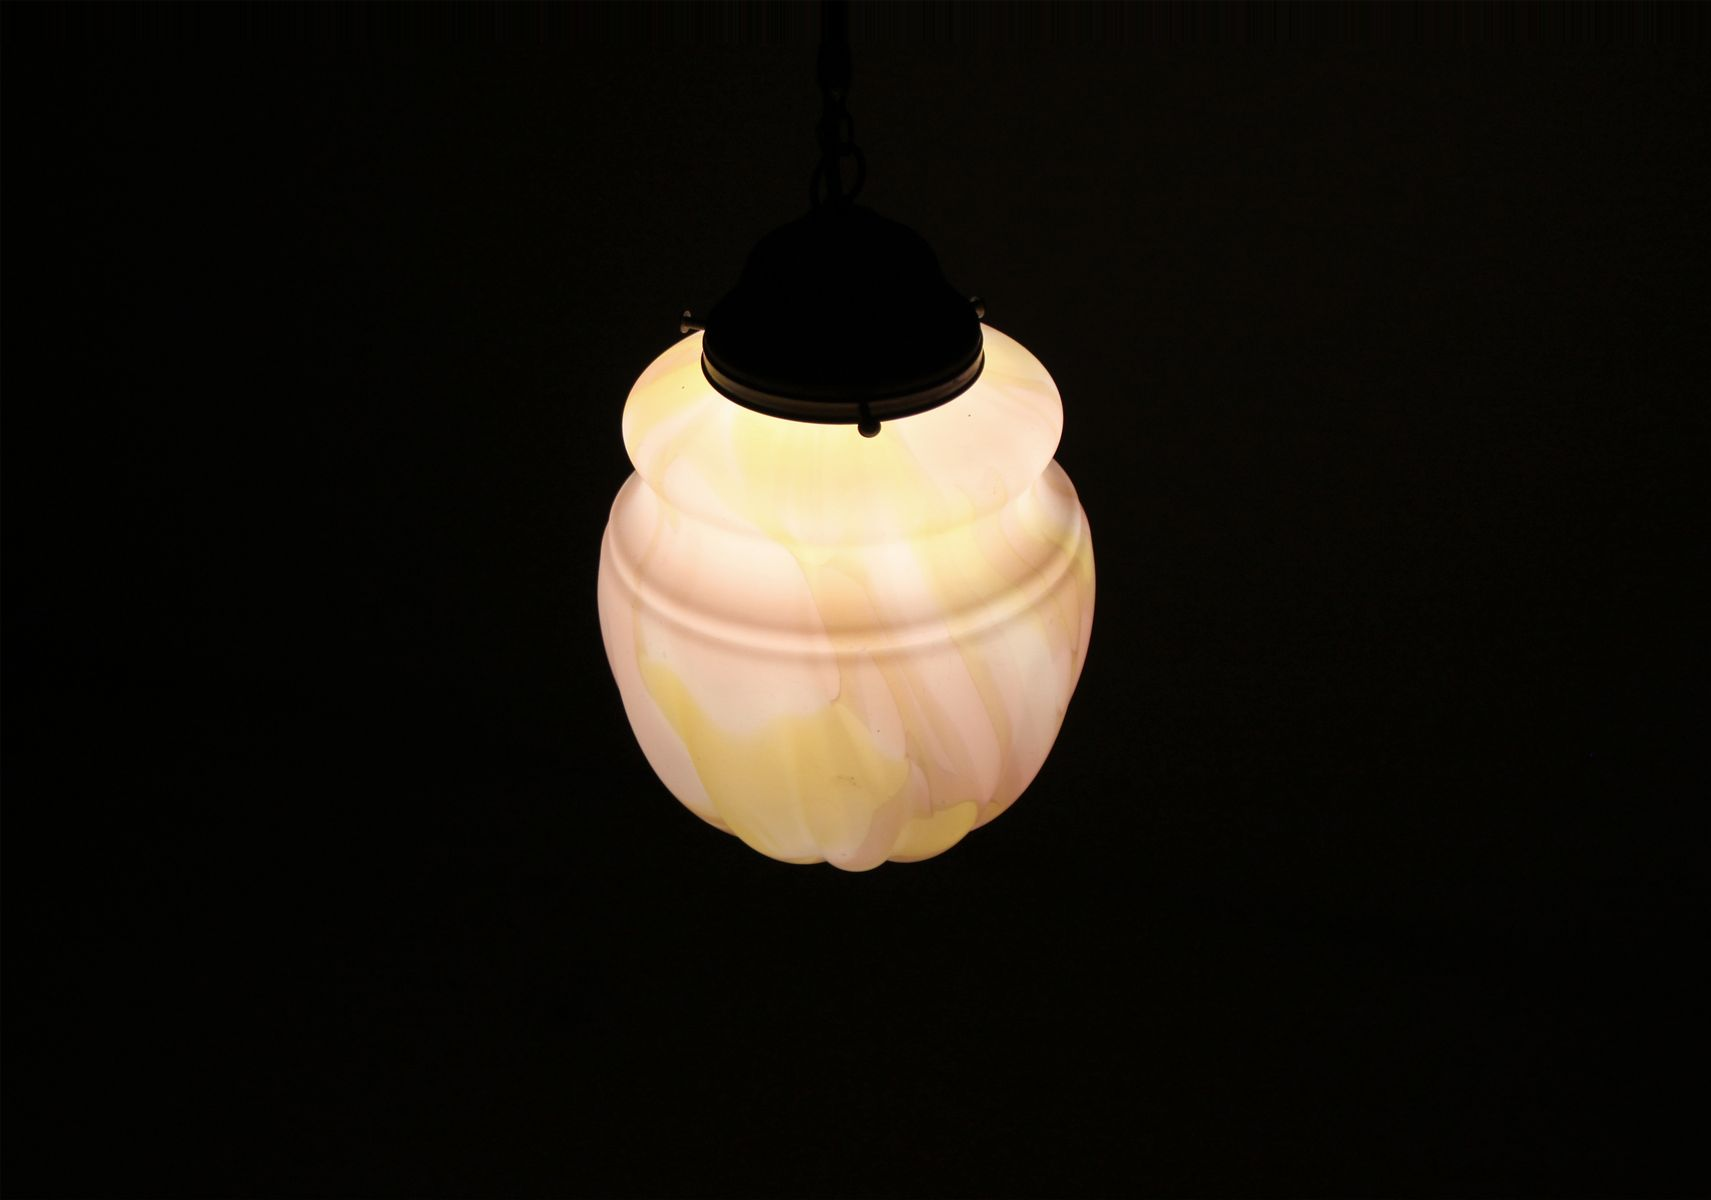 light period degue degu ceiling hexagonal opalescent glass ceilings deco and moulded suspension metal art